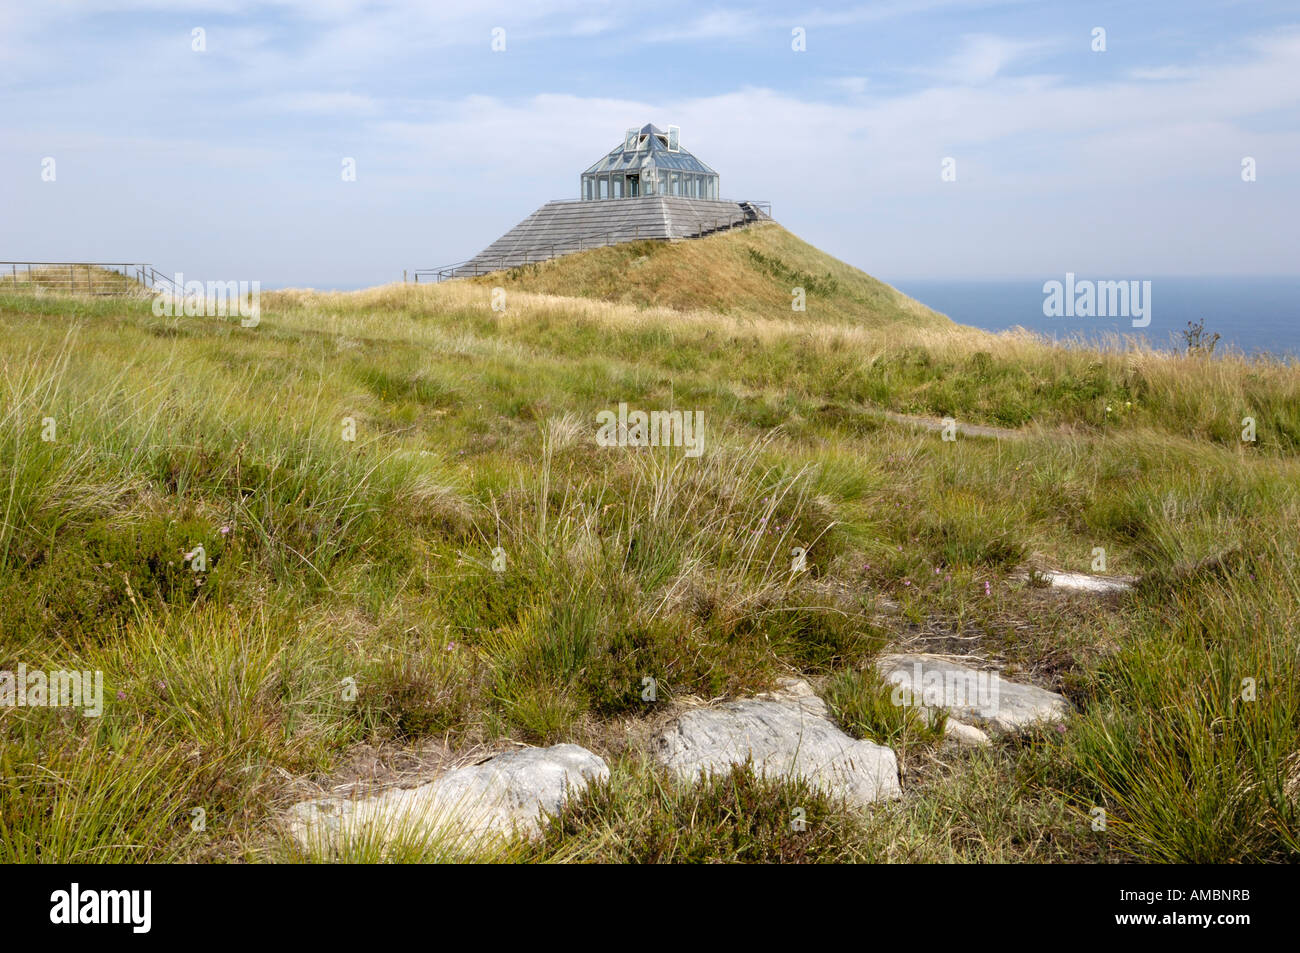 Exhibition hall and viewing platform at Ceide Fields neolithic site, near Ballycastle, County Mayo, Ireland - Stock Image